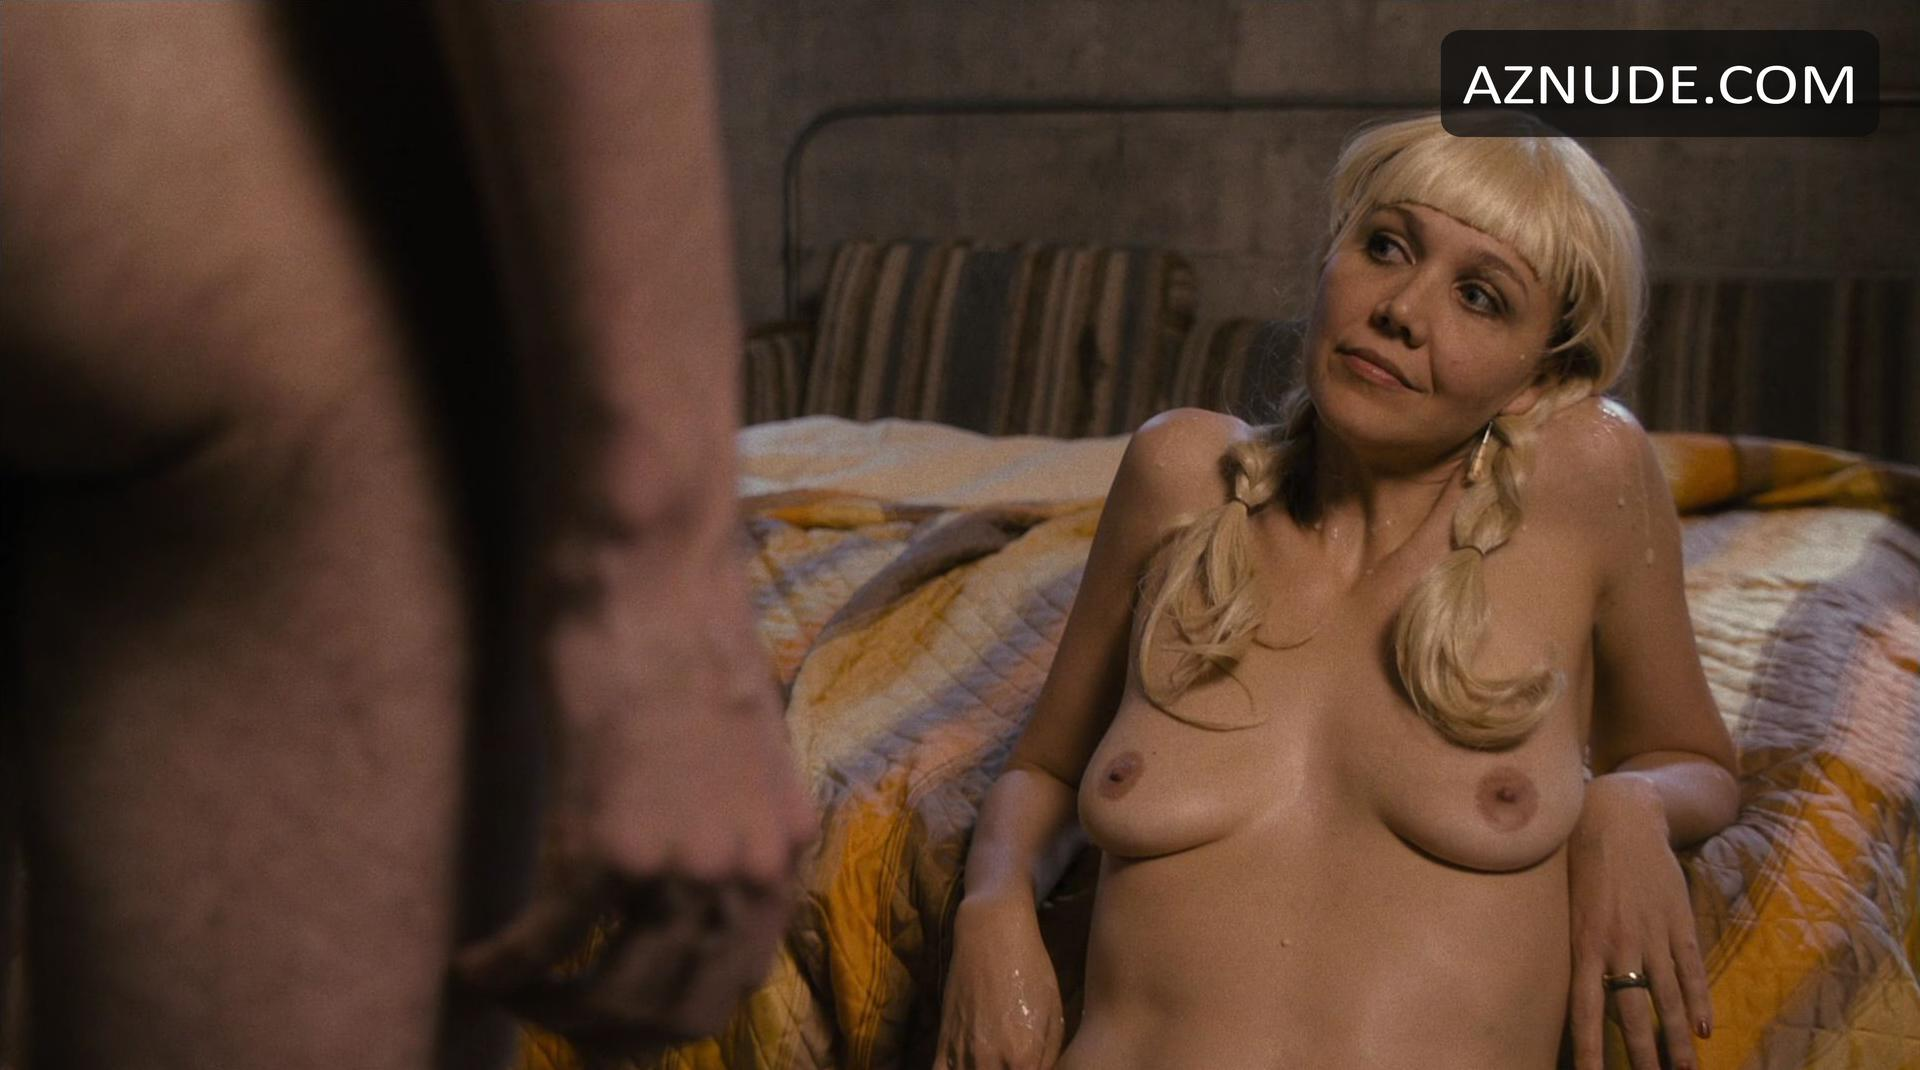 Maggie gyllenhaal strip search 7